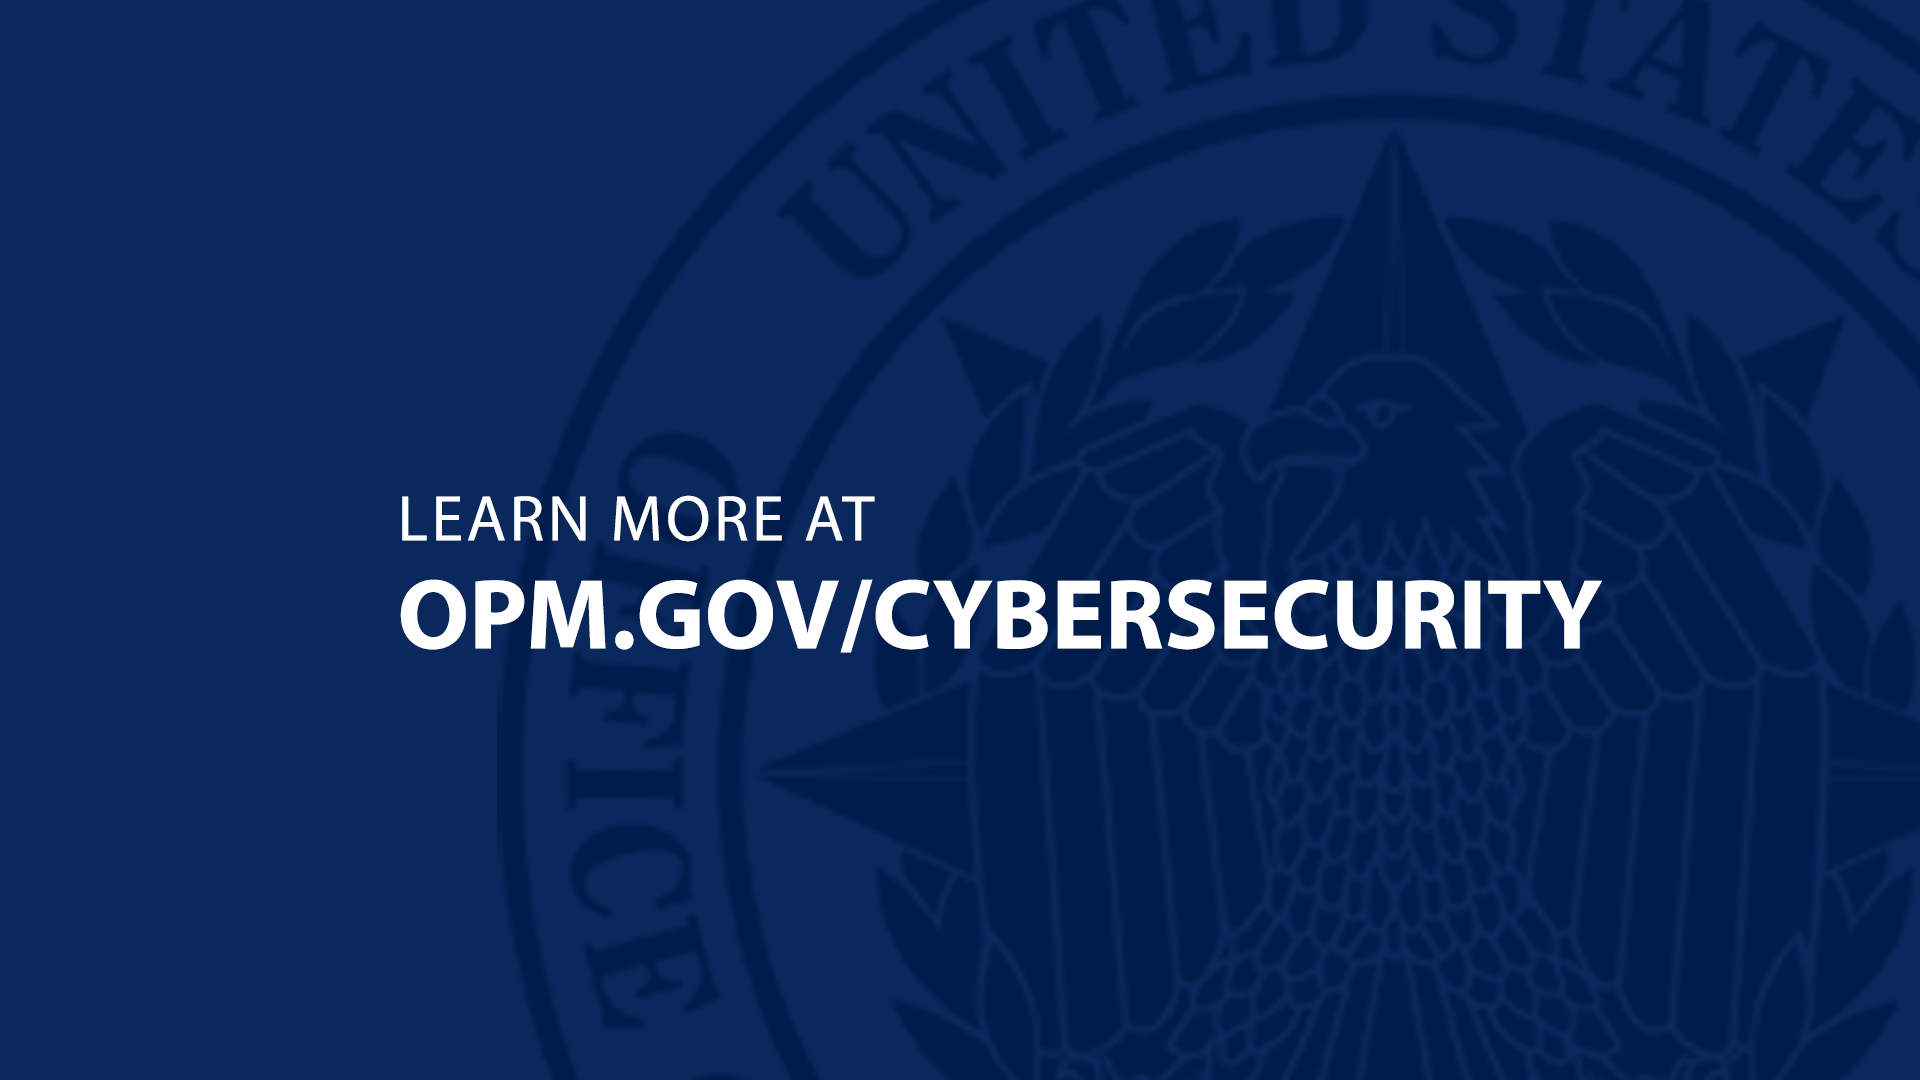 Graphic with blue background. Headline: LEARN MORE AT. Subhead: OPM.GOV/CYBERSECURITY.